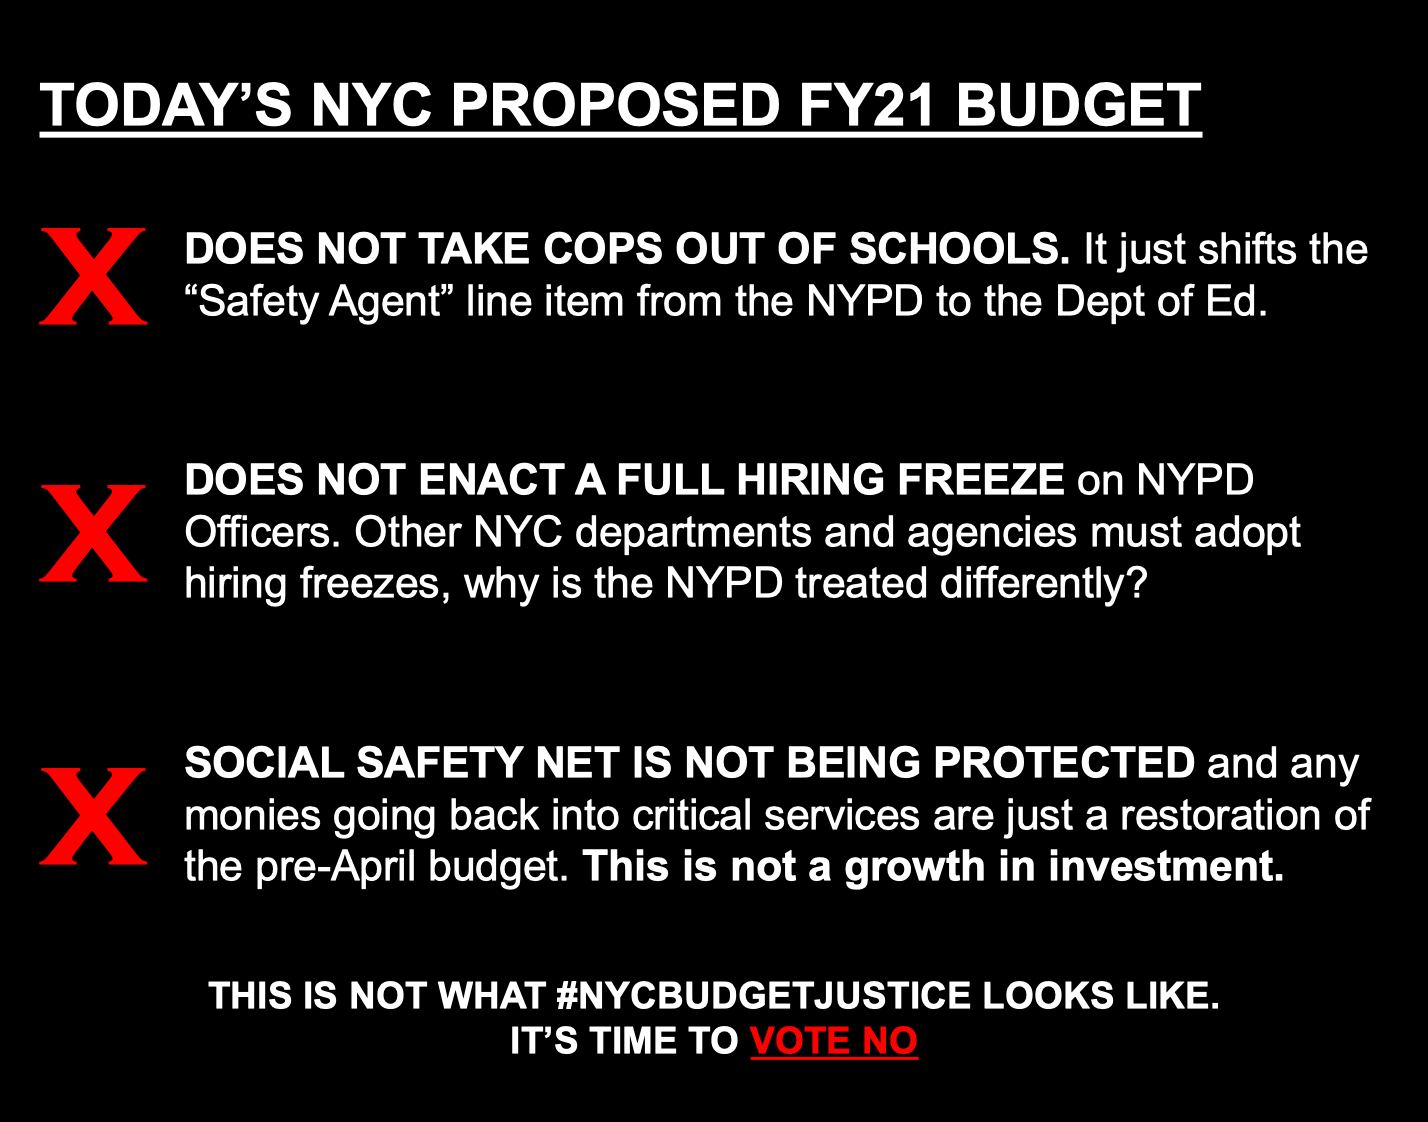 List of ways NYC Budget does NOT Defund NYPD by $1B